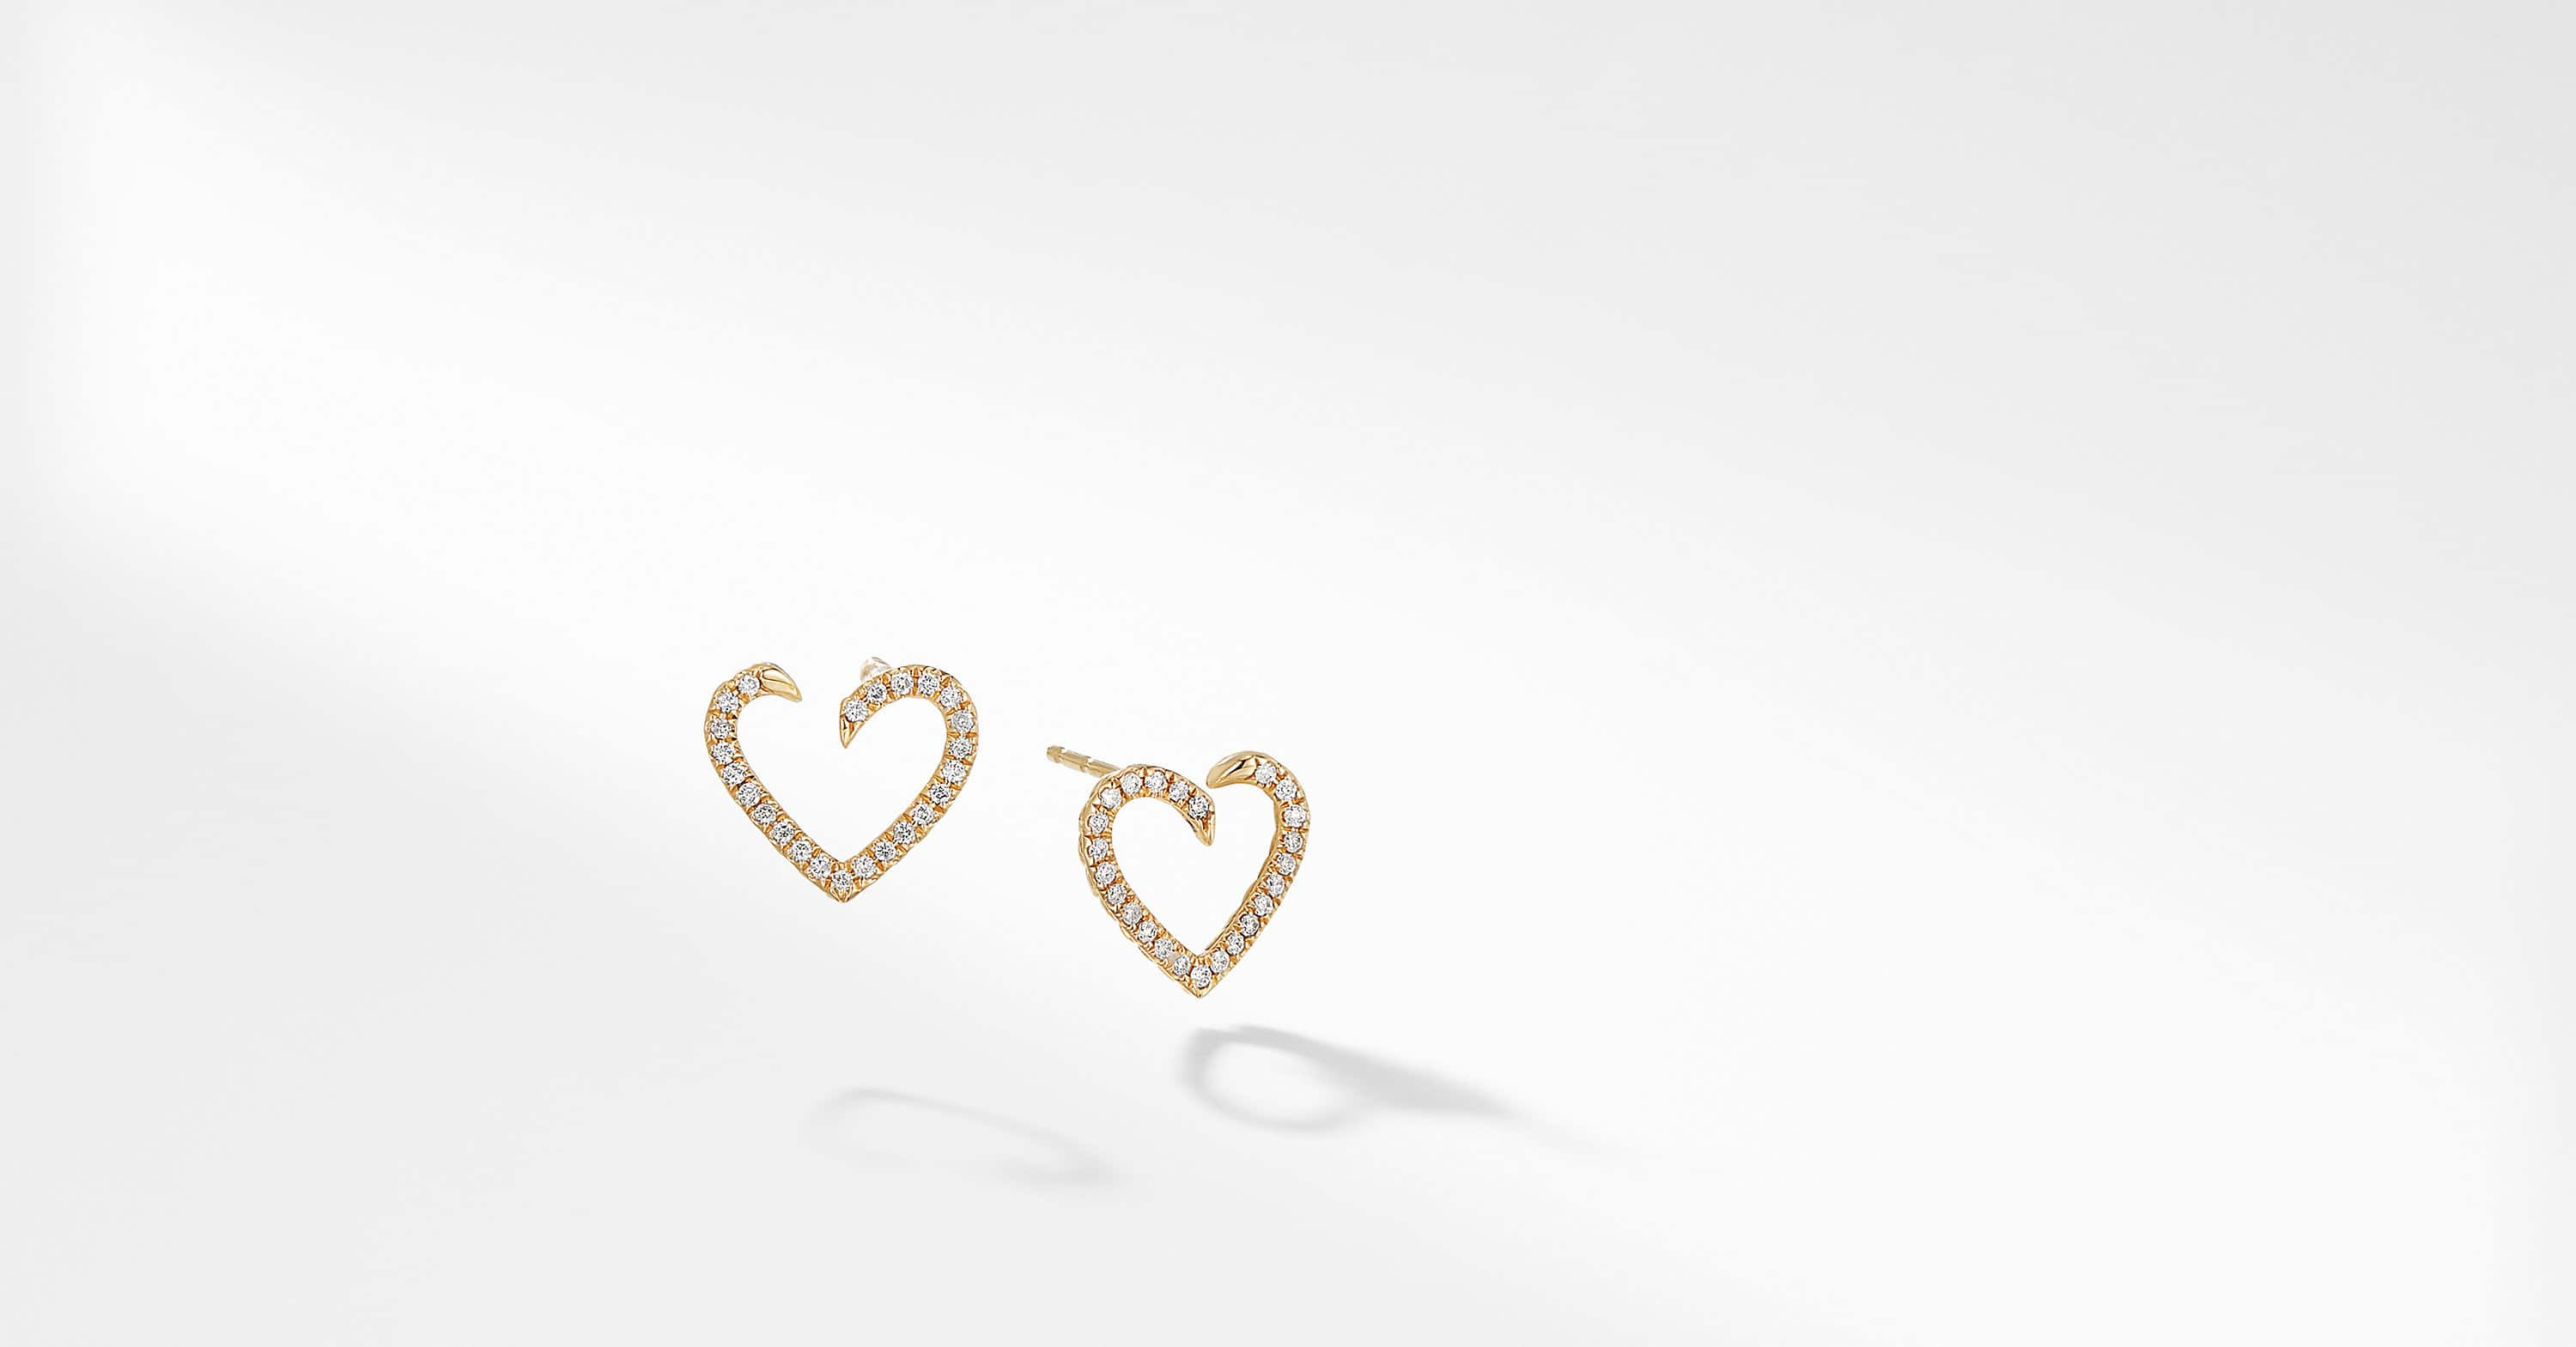 Heart Wrap Earring with Diamonds in 18K Gold